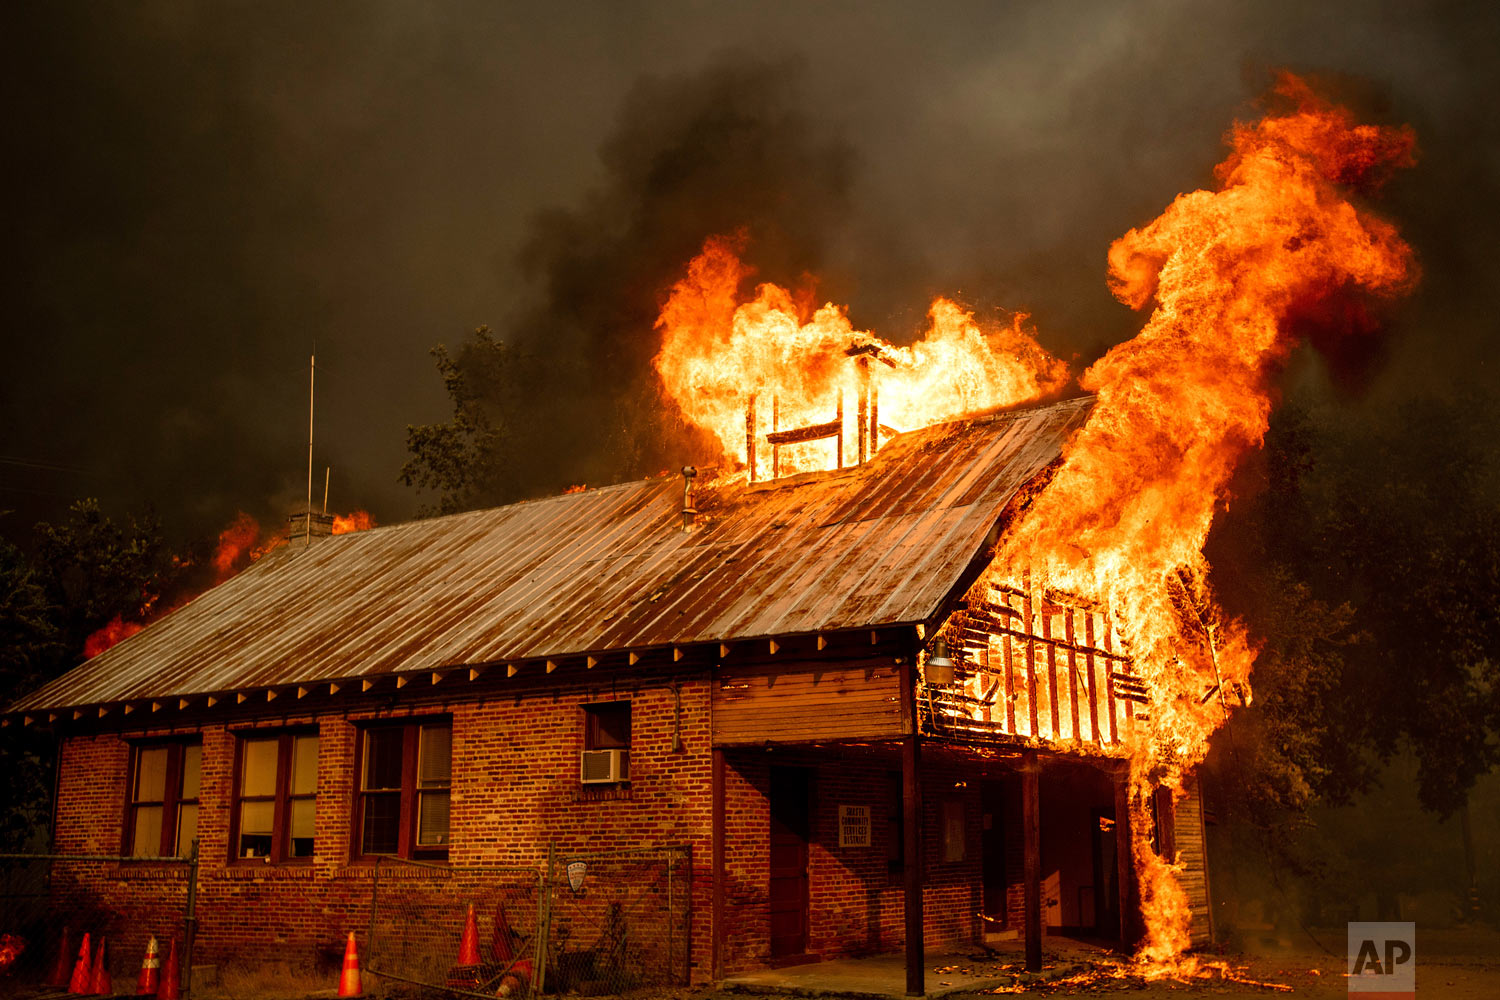 An historic schoolhouse burns as the Carr Fire tears through Shasta, Calif., Thursday, July 26, 2018. The wildfires have been fueled by high temperatures, wind and low humidity in the area. (AP Photo/Noah Berger)